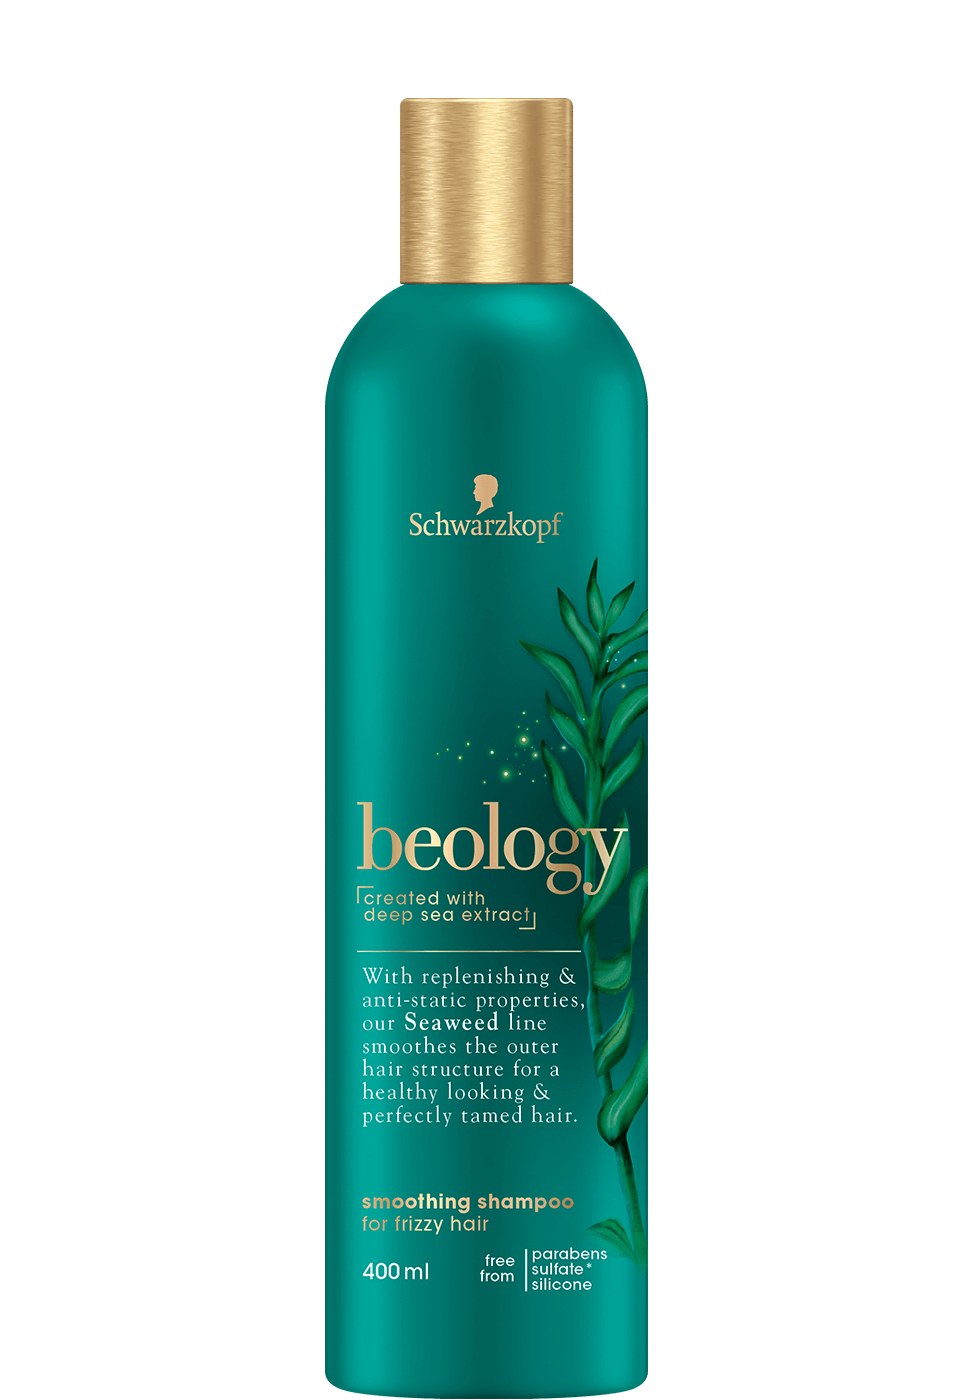 beology_com_smoothing_shampoo_970x1400